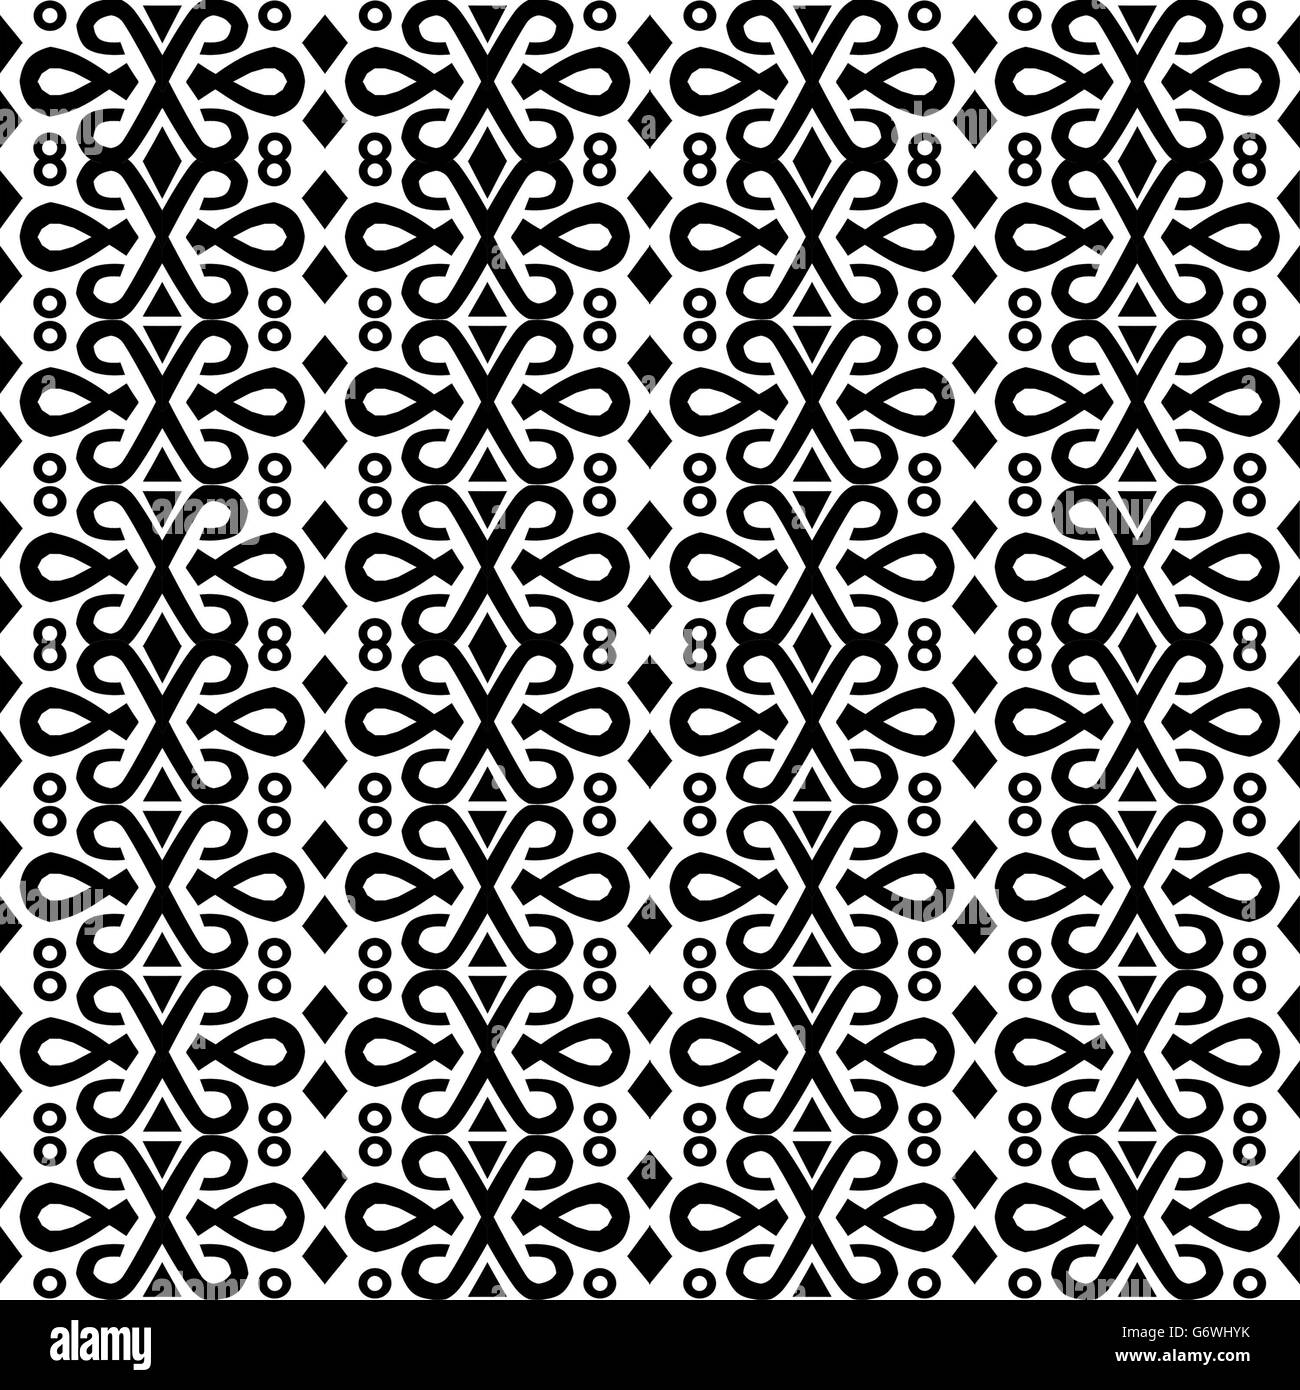 Most common pattern found on clothing and home furnishings in Borneo - Stock Image